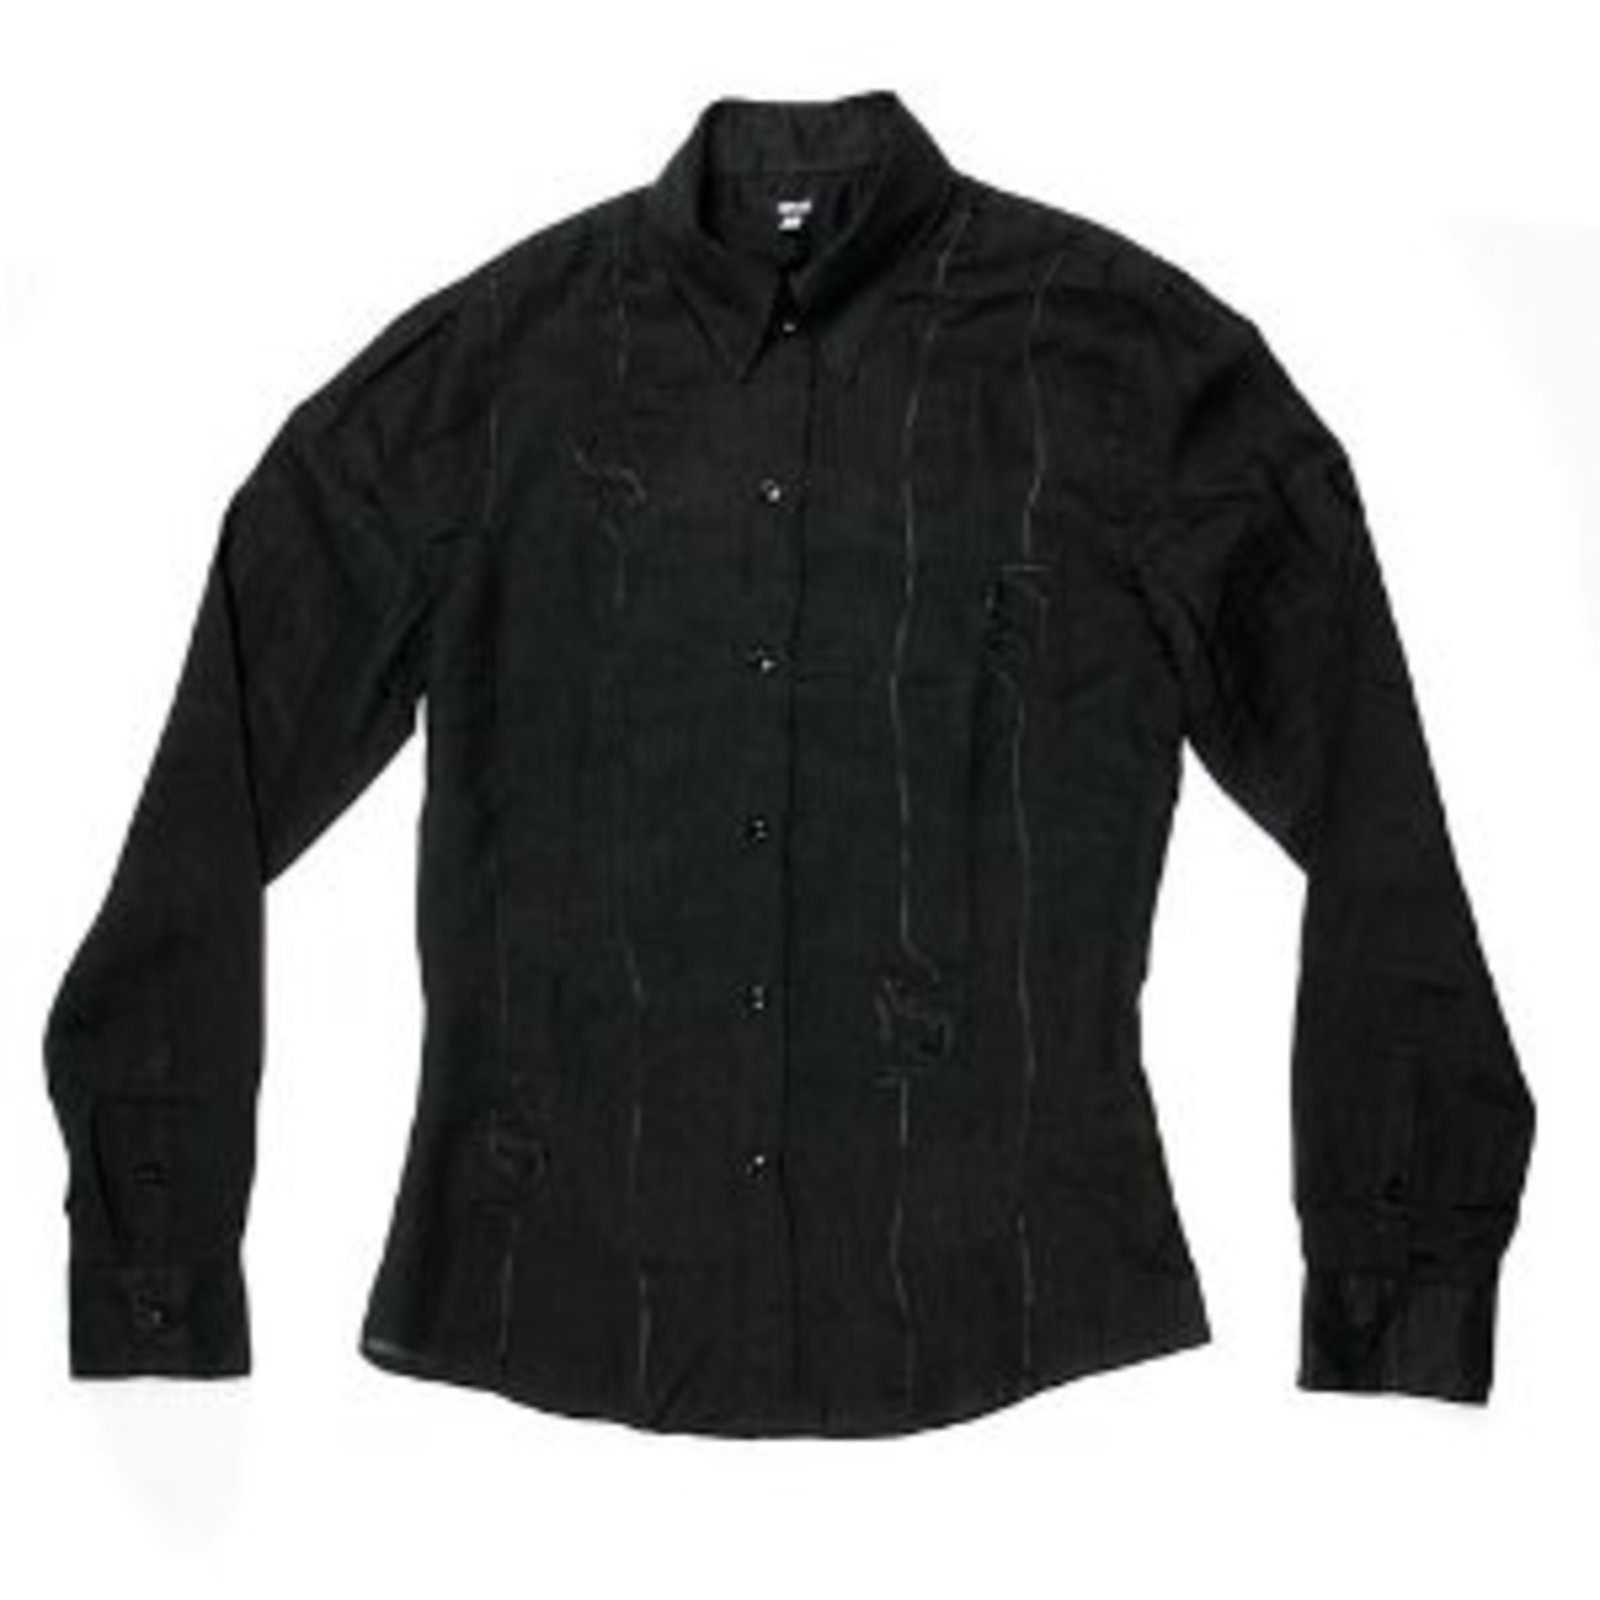 Versace Shirts For Sale Versace Shirt Mens Long Sleeve